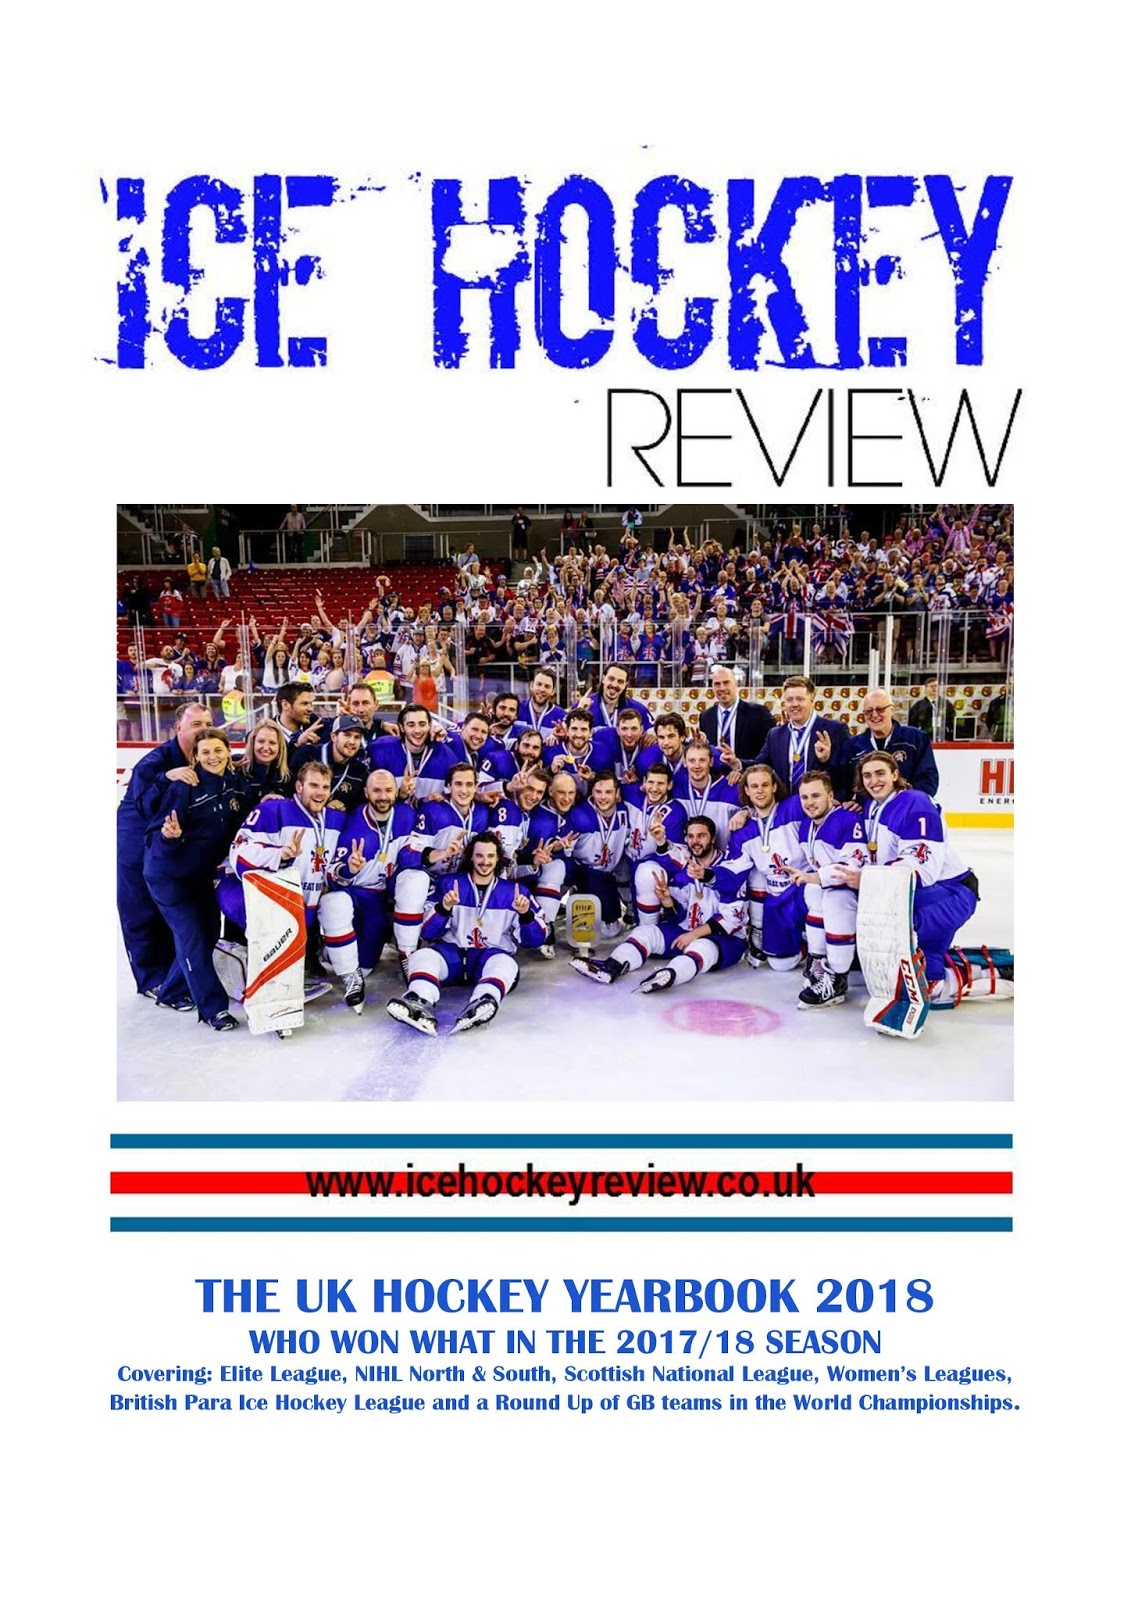 Ice Hockey Review 2018 Uk Hockey Yearbook Now Available By Mail Order